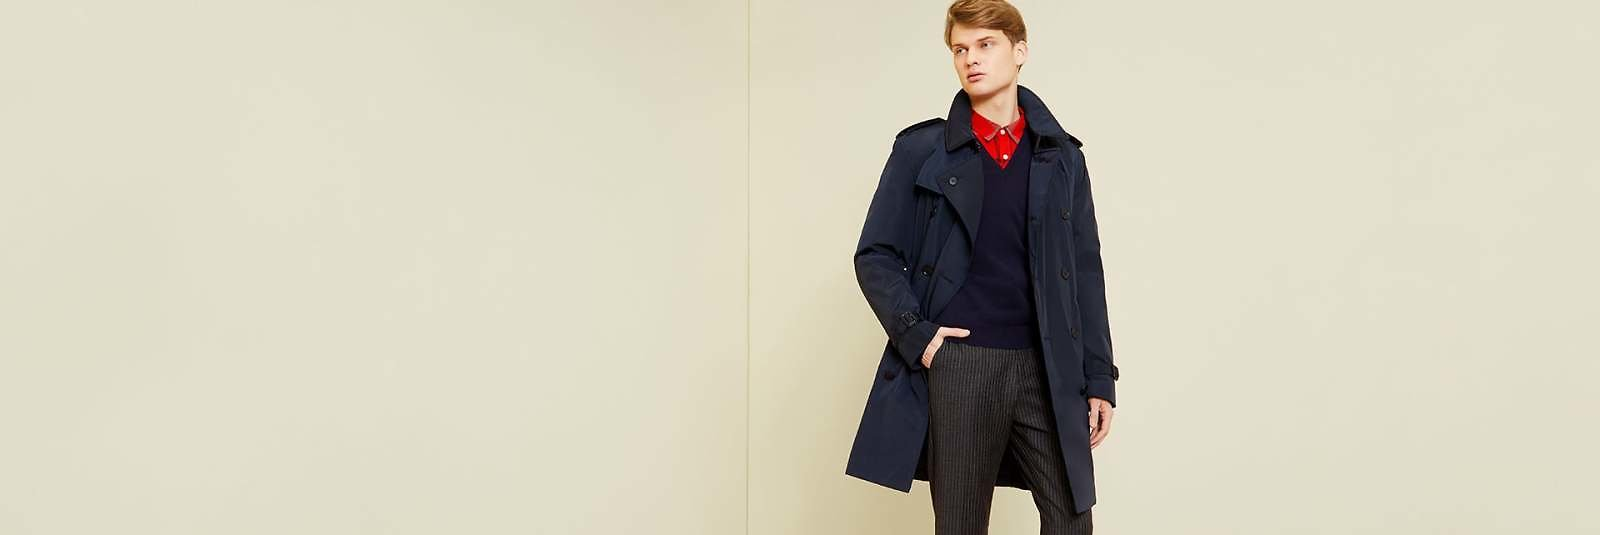 Burberry Apparels for Sale - Nordstrom Rack + Free Shipping